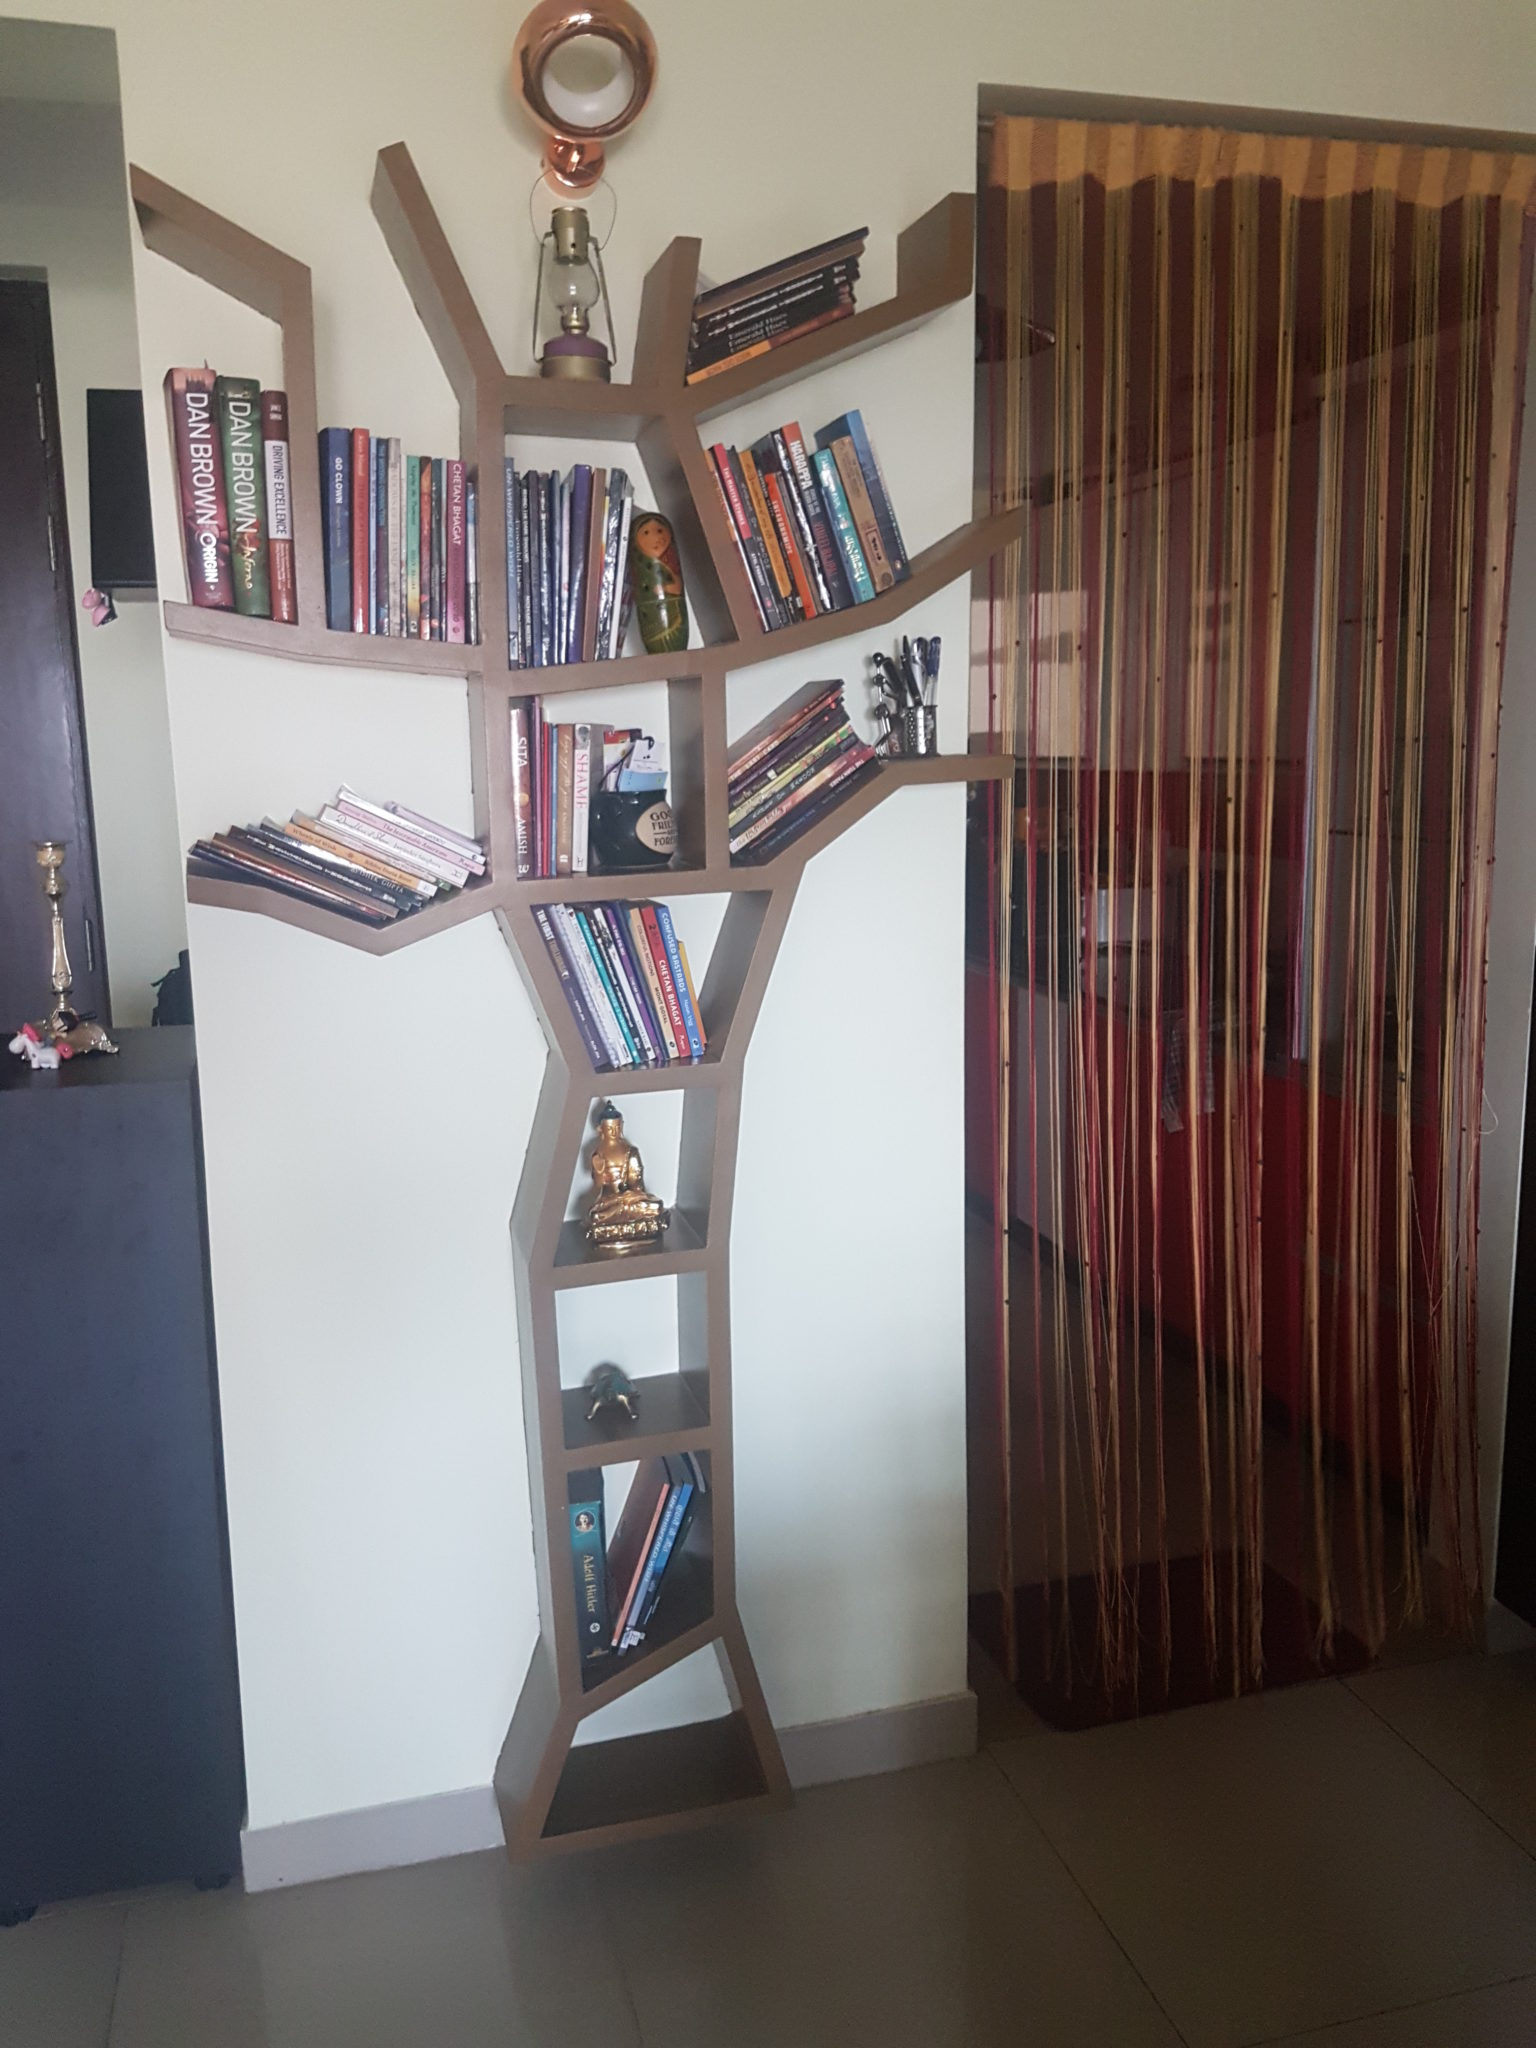 Tree Bookshelf and Branch Bookshelf on opposite walls